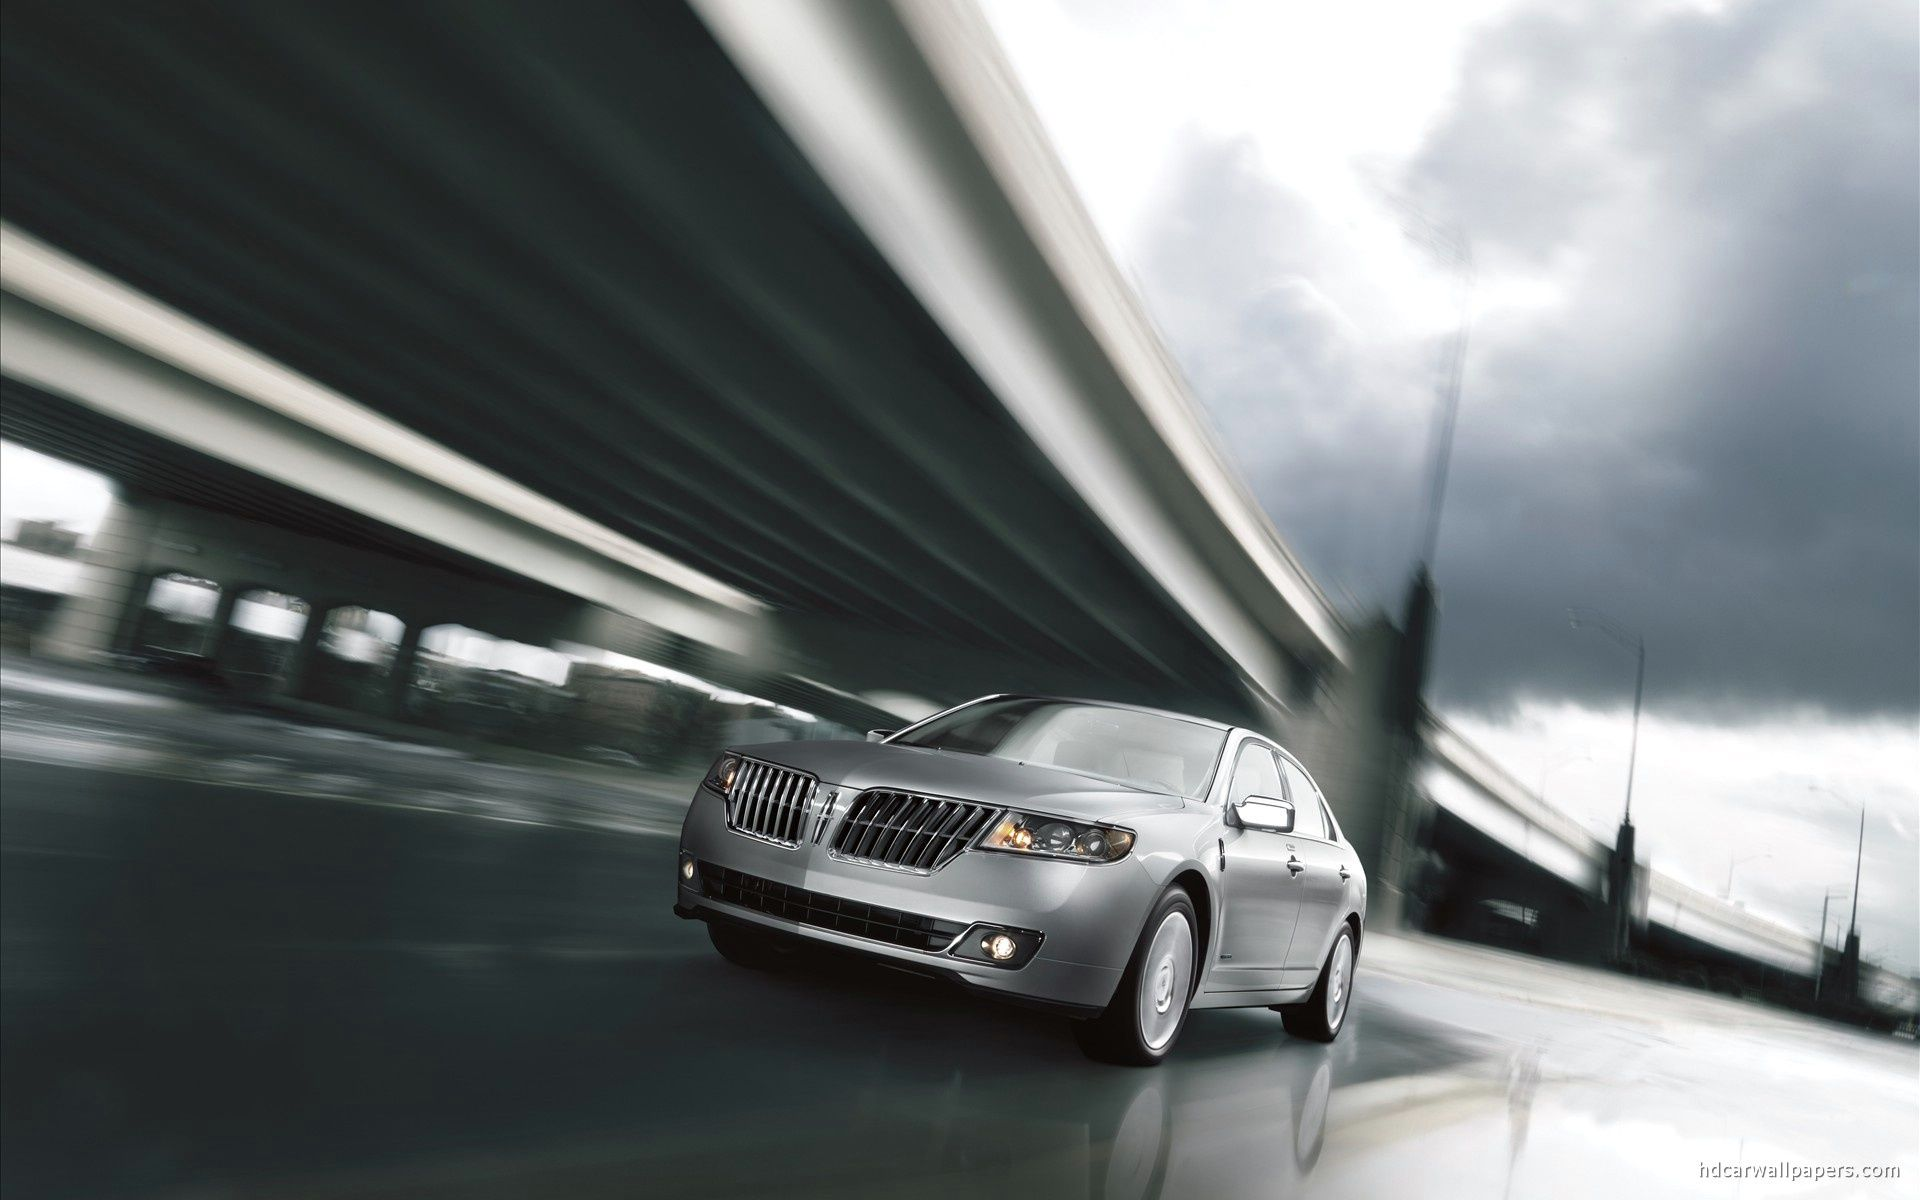 interior drive reviews sedan mks price photos base features wheel front lincoln